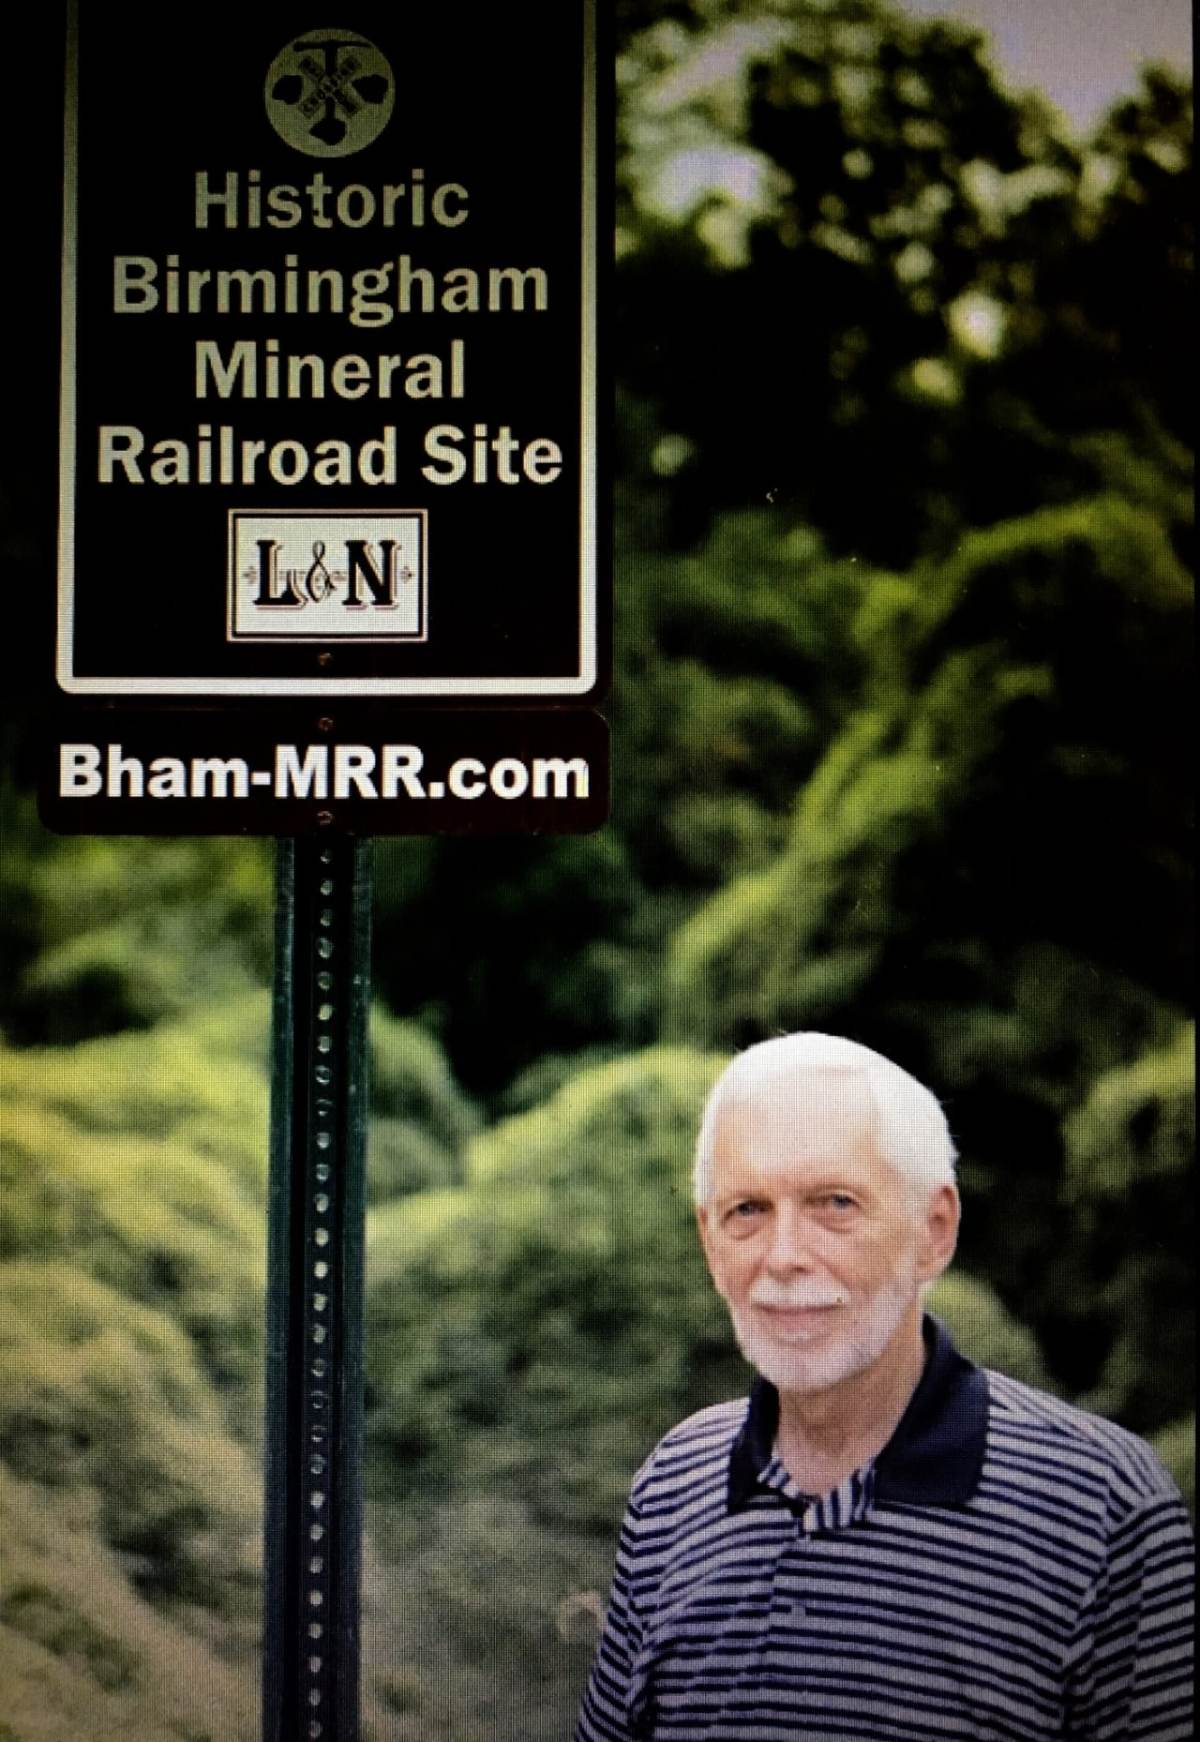 Signs, signs everywhere a sign – remembering Birmingham's railroad history